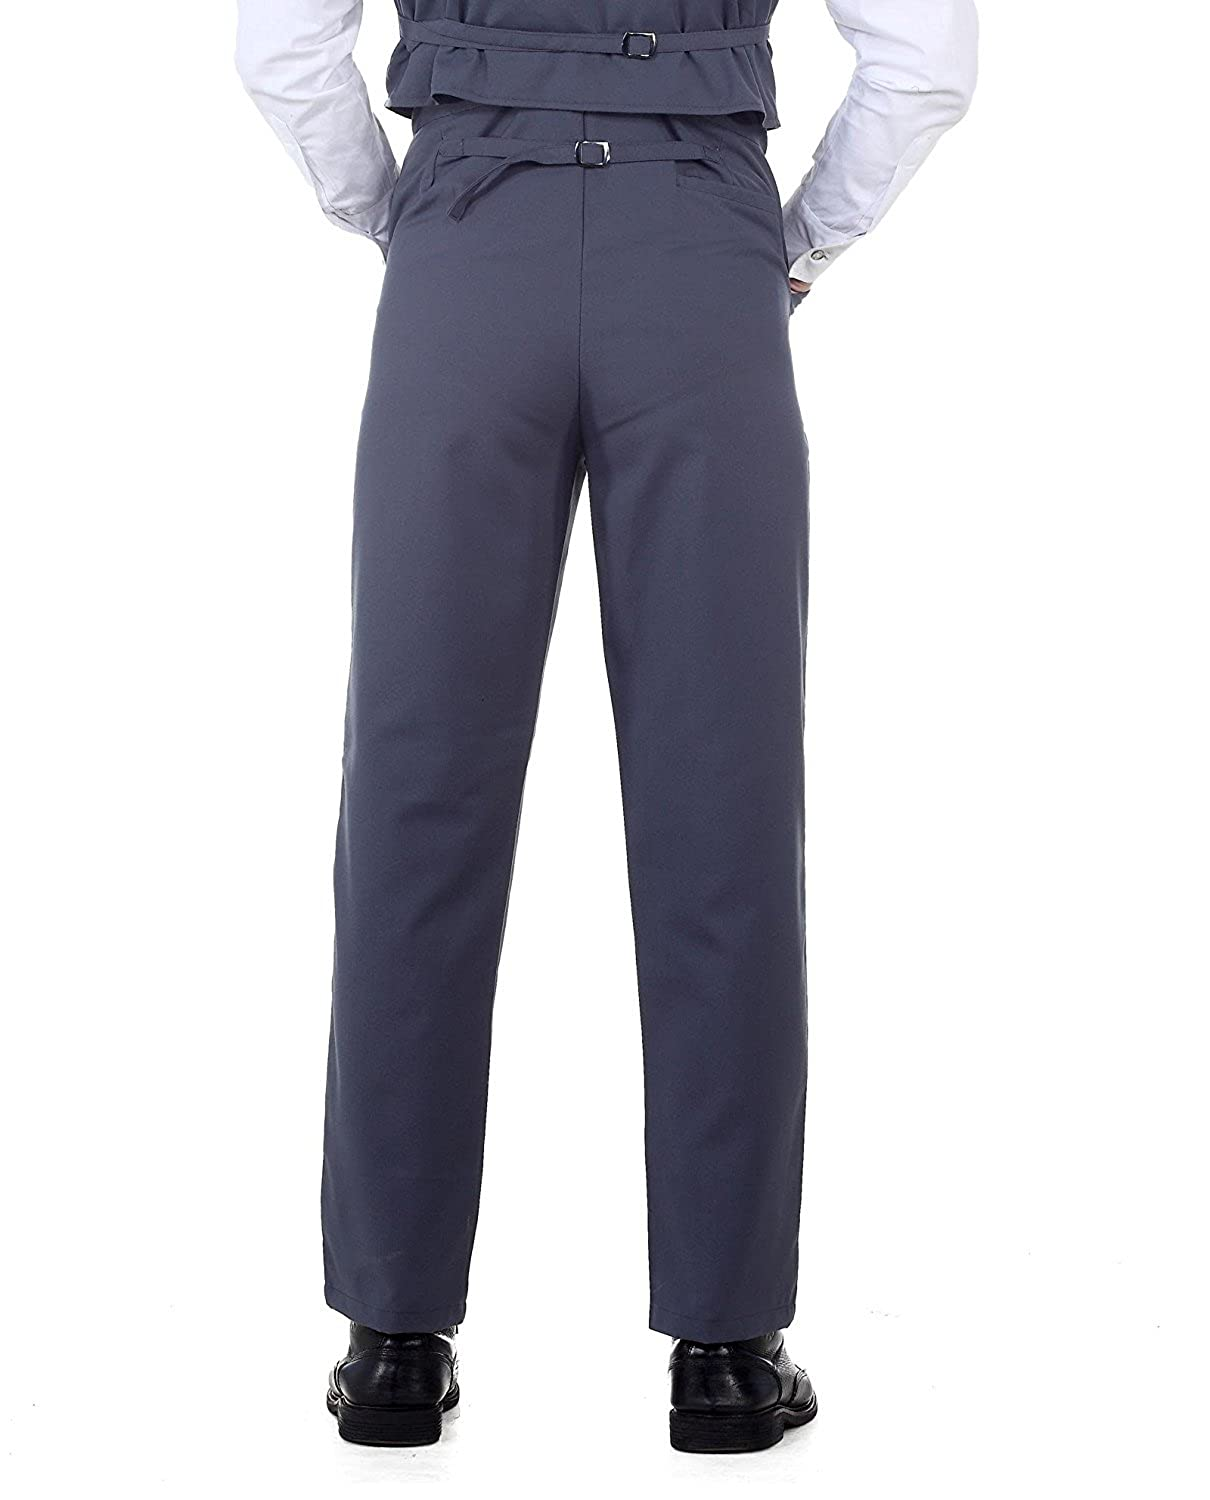 Victorian Men's Pants – Victorian Steampunk Men's Clothing Steampunk Victorian Costume Canvas Classic Pants Grey $37.95 AT vintagedancer.com